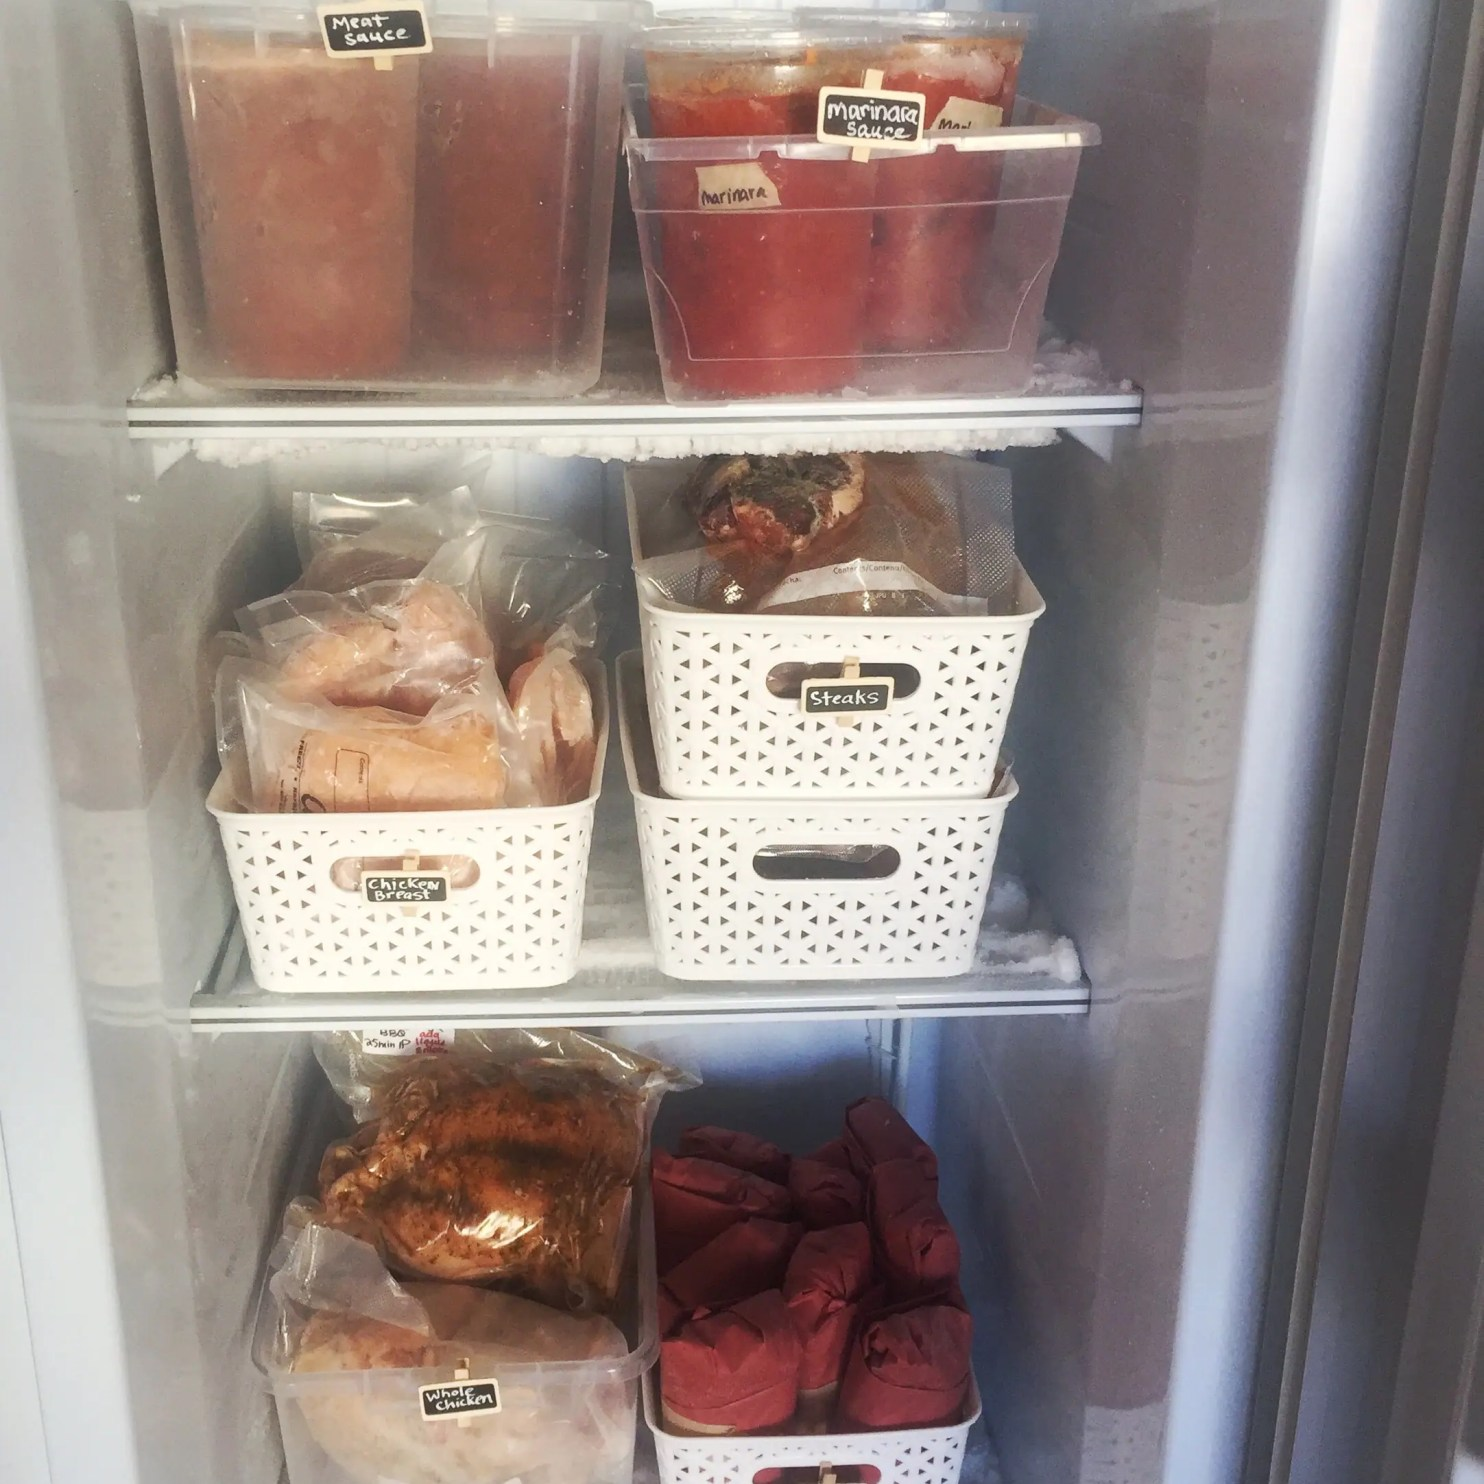 7 Tips for Freezer Organization to save money and reduce food waste